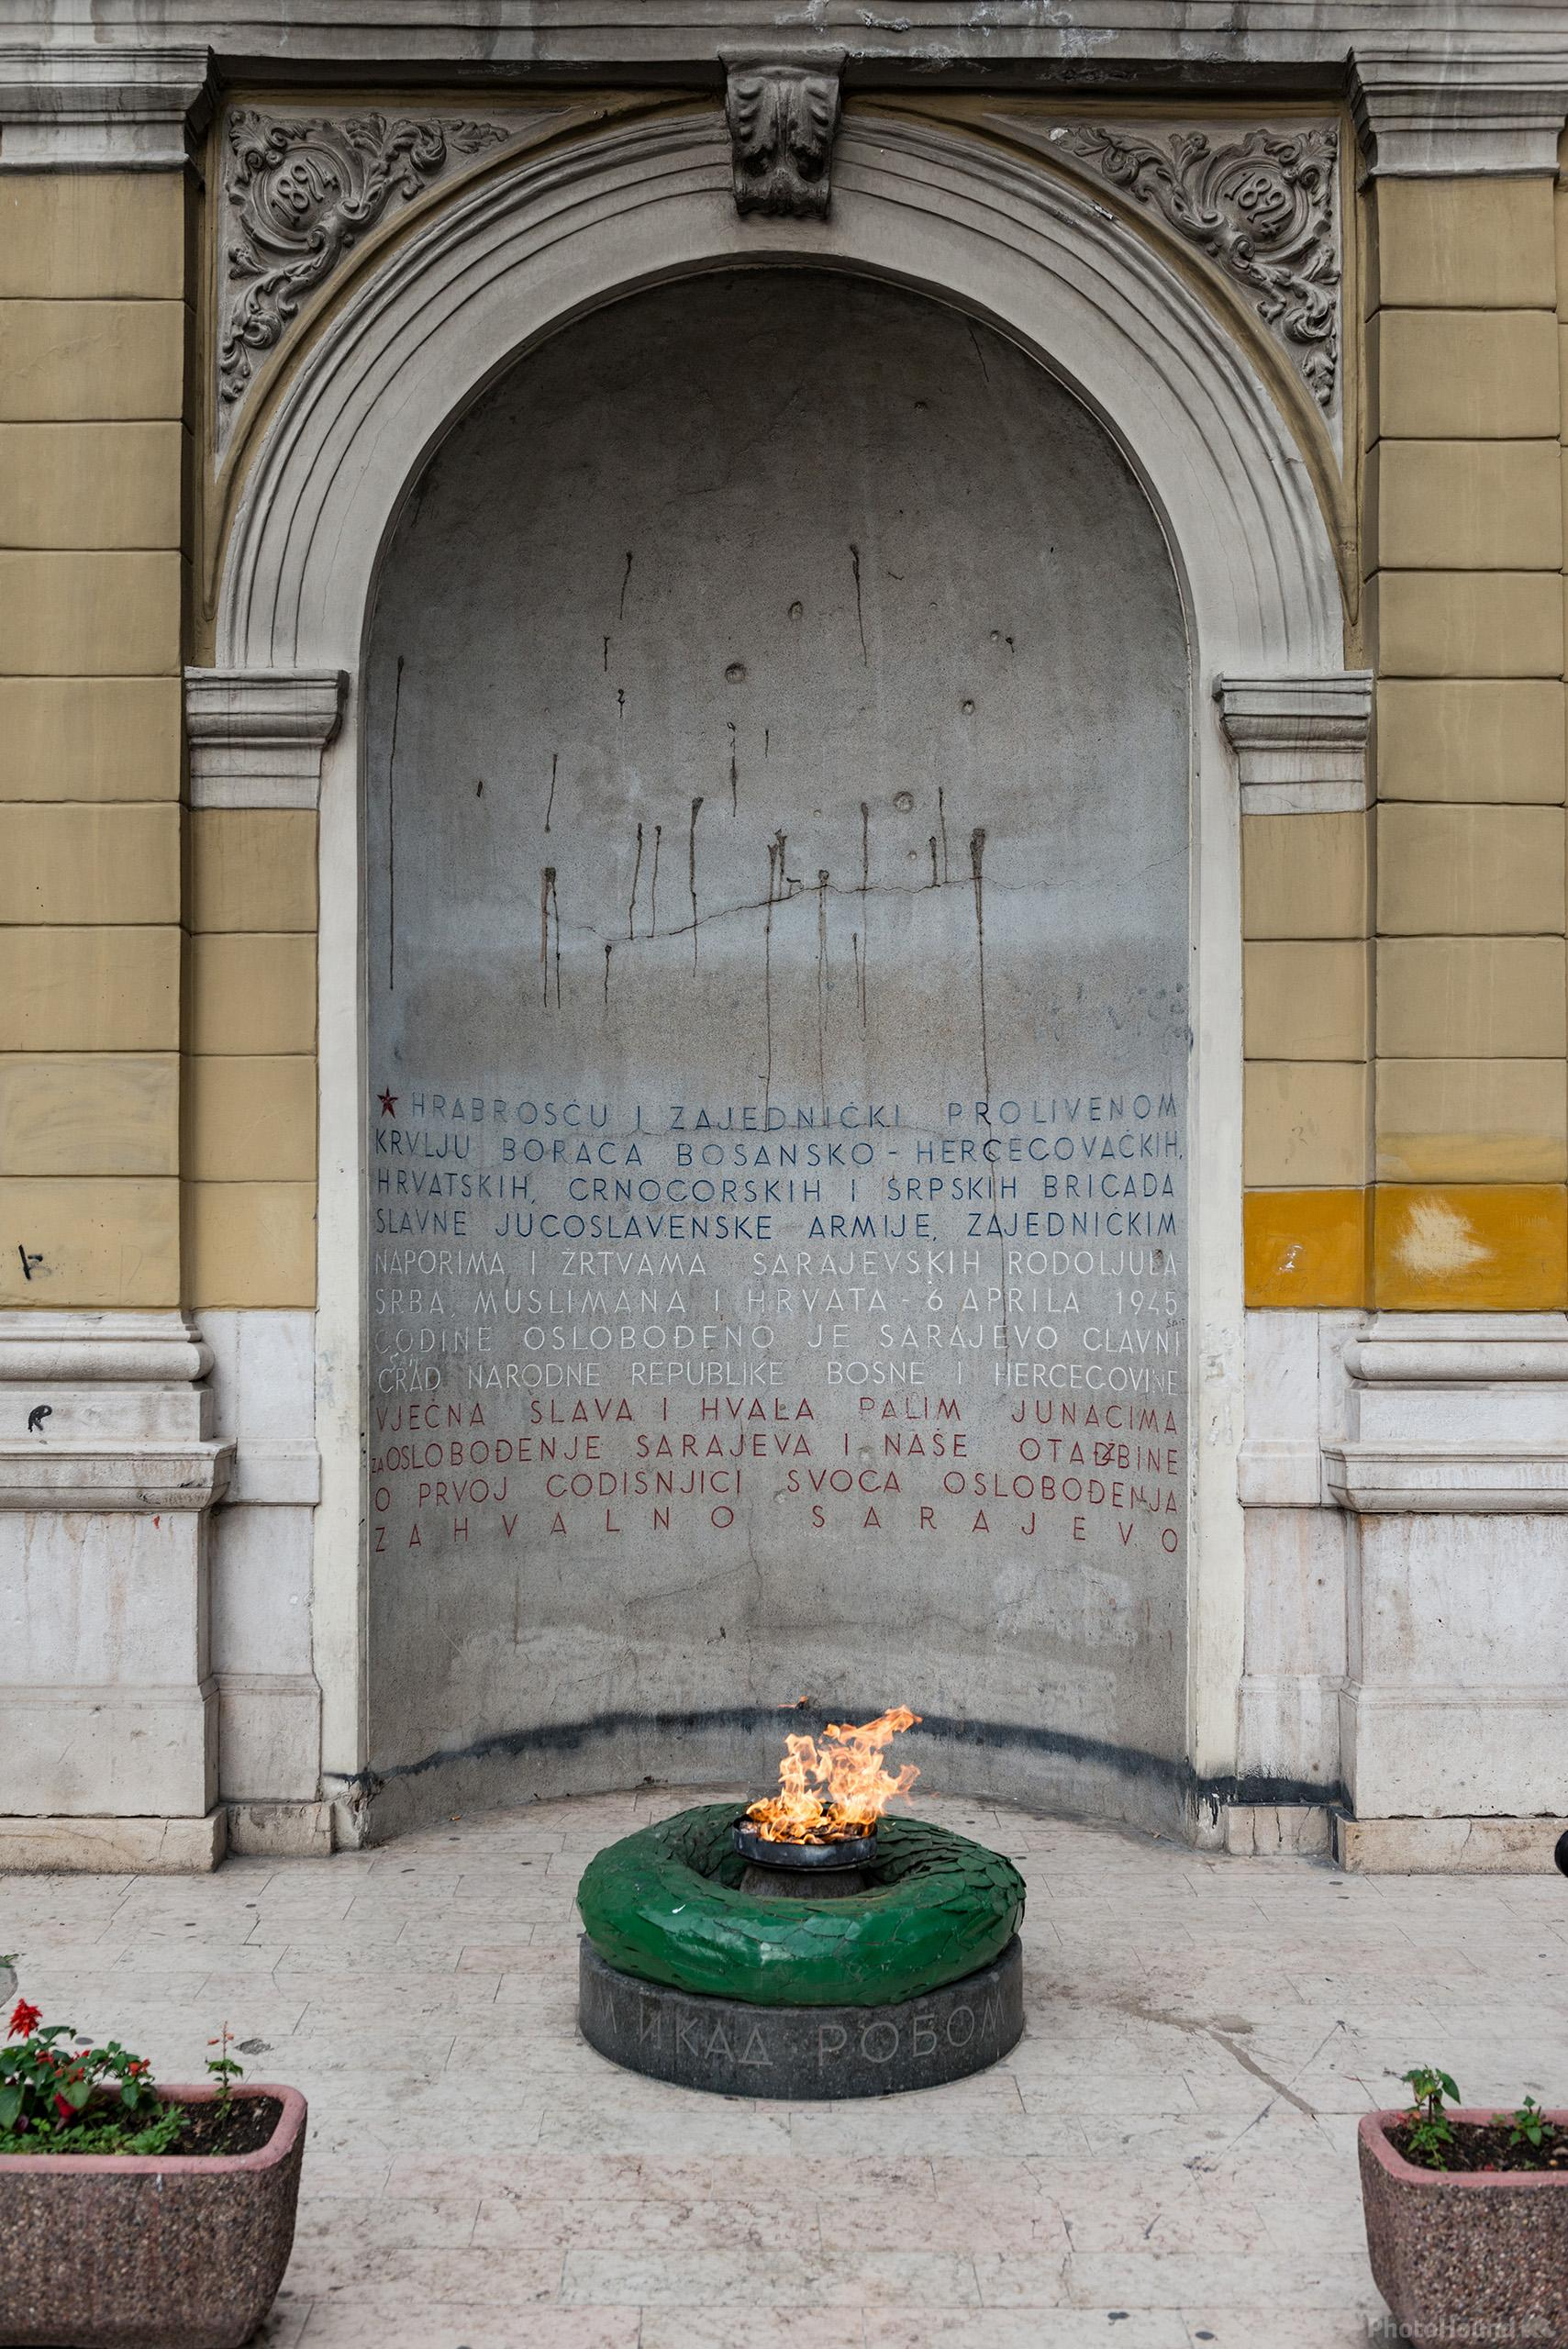 Eternal Flame (Vje?na Vatra)